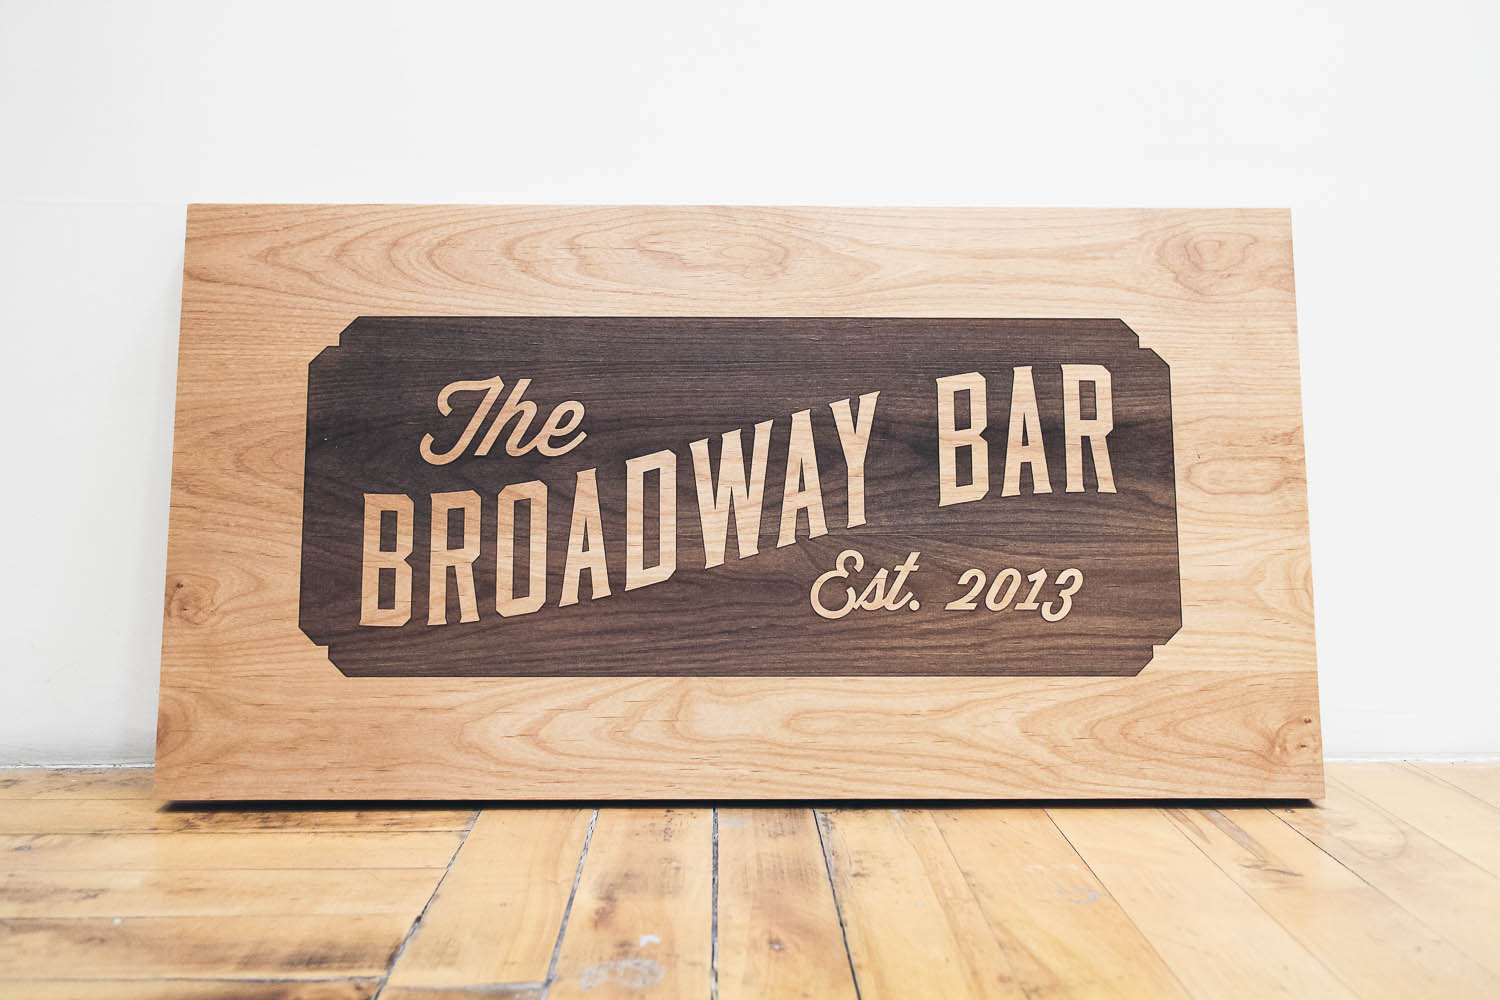 The Broadway Bar Etched Wood Sign